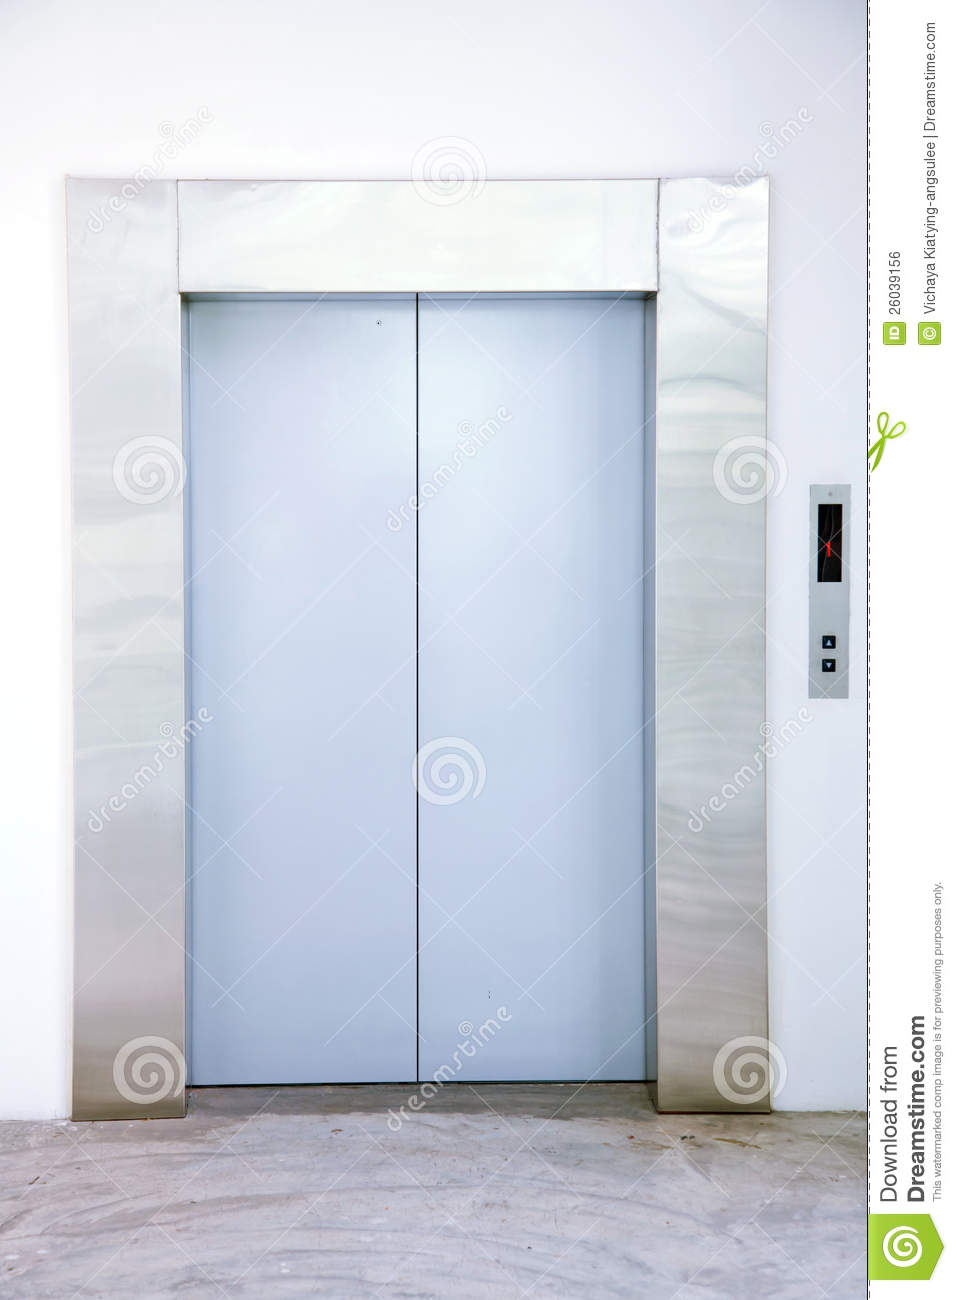 Front view of a modern elevator with closed doors in lobby.